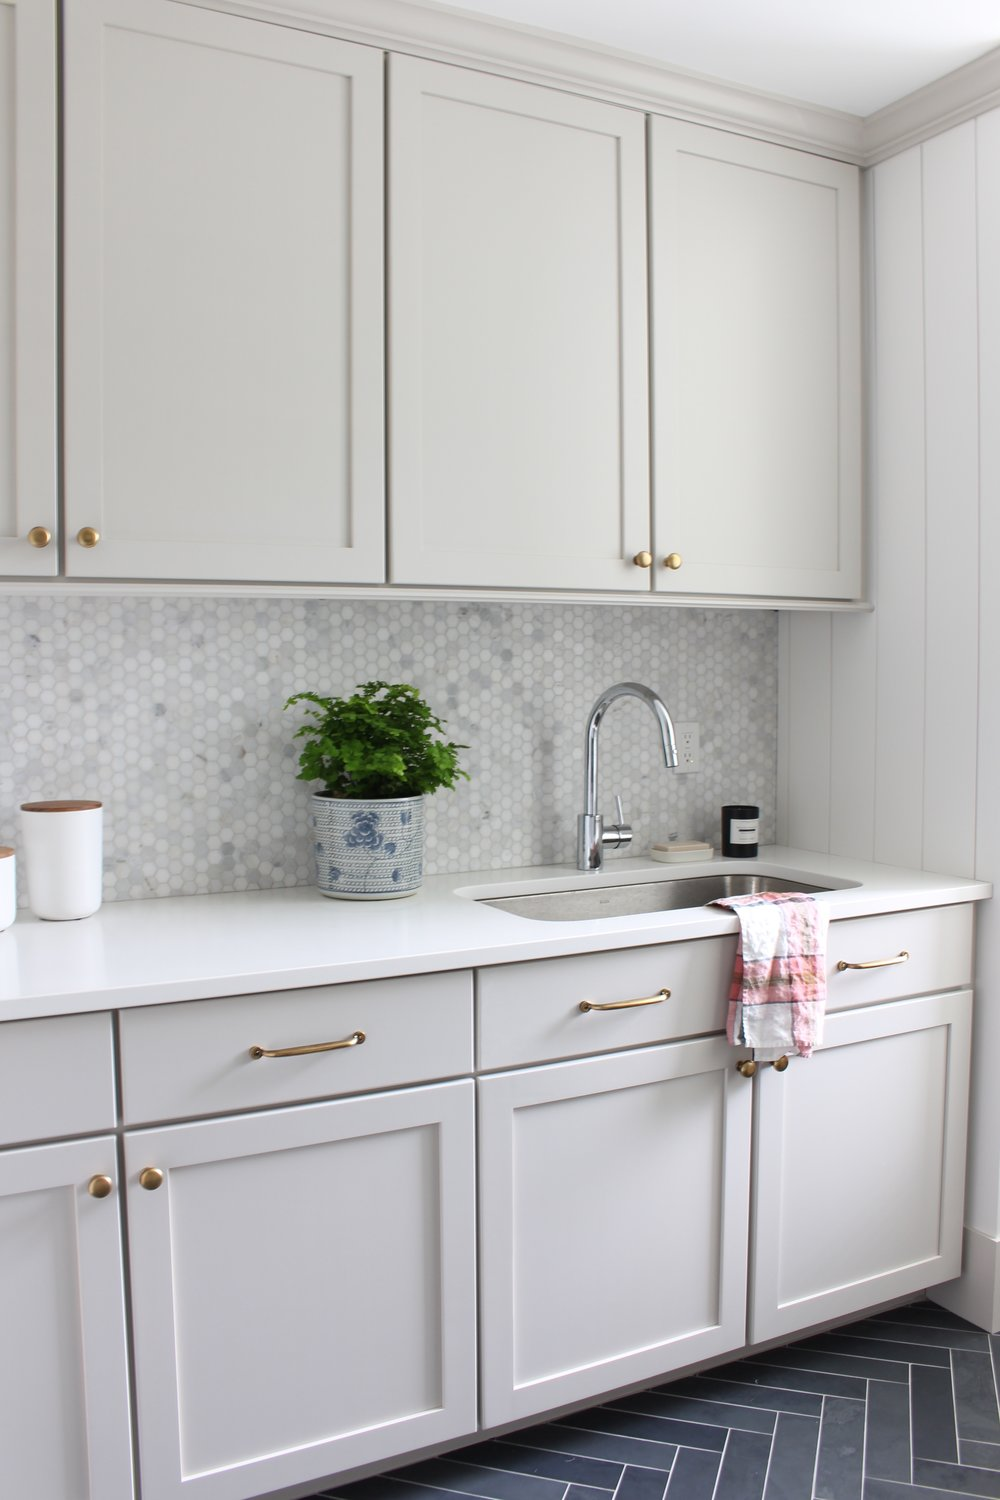 Laundry cabinetry 2.jpg